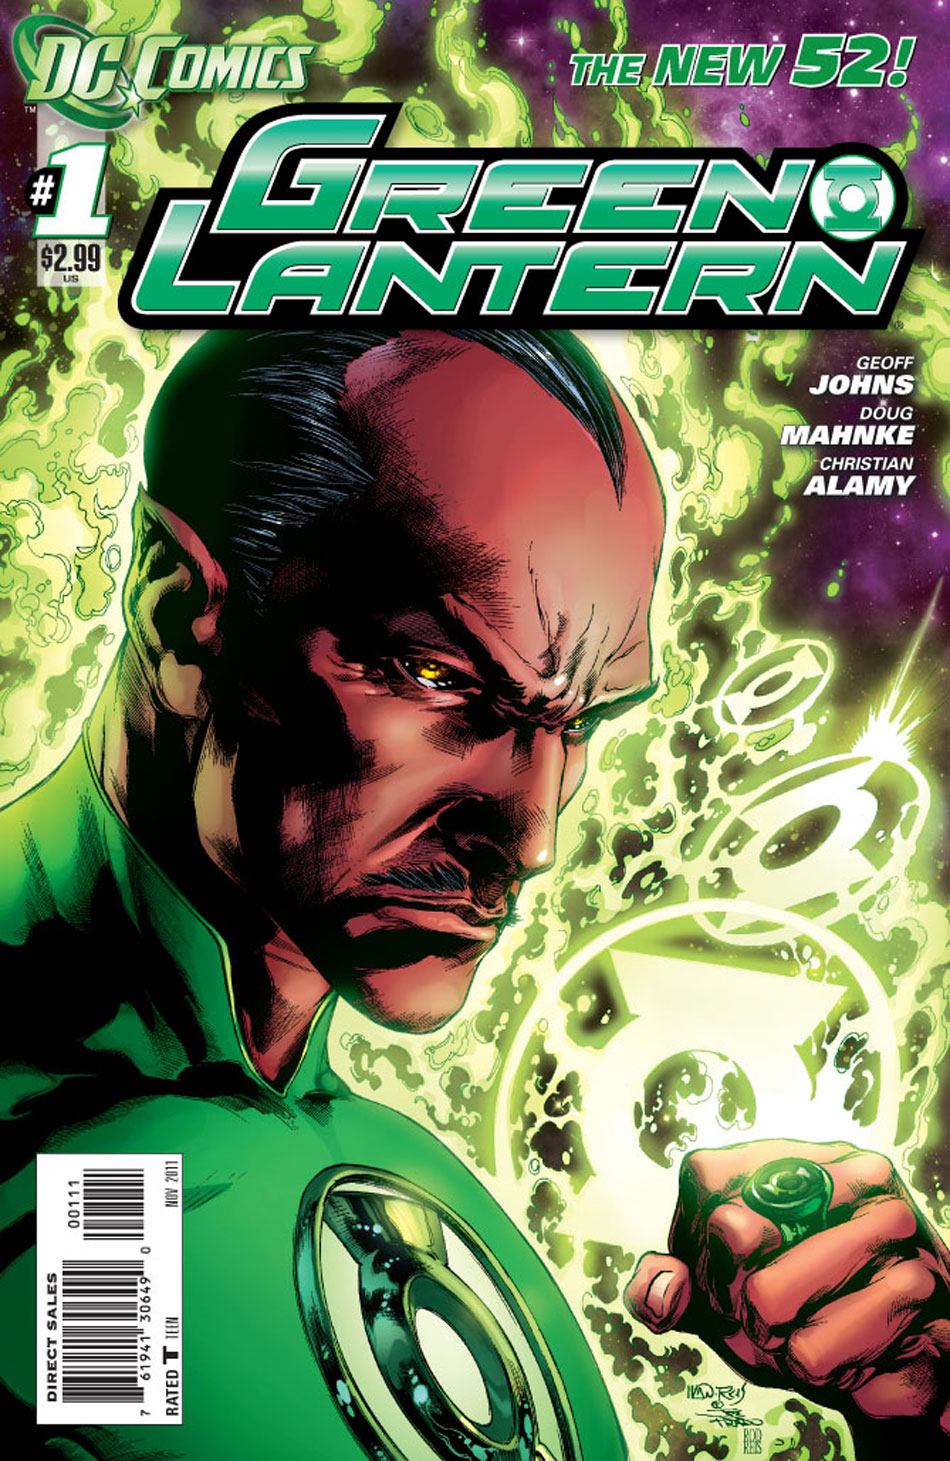 Green Lantern #1 cover by Ivan Reis, Joe Prado and Rod Reis